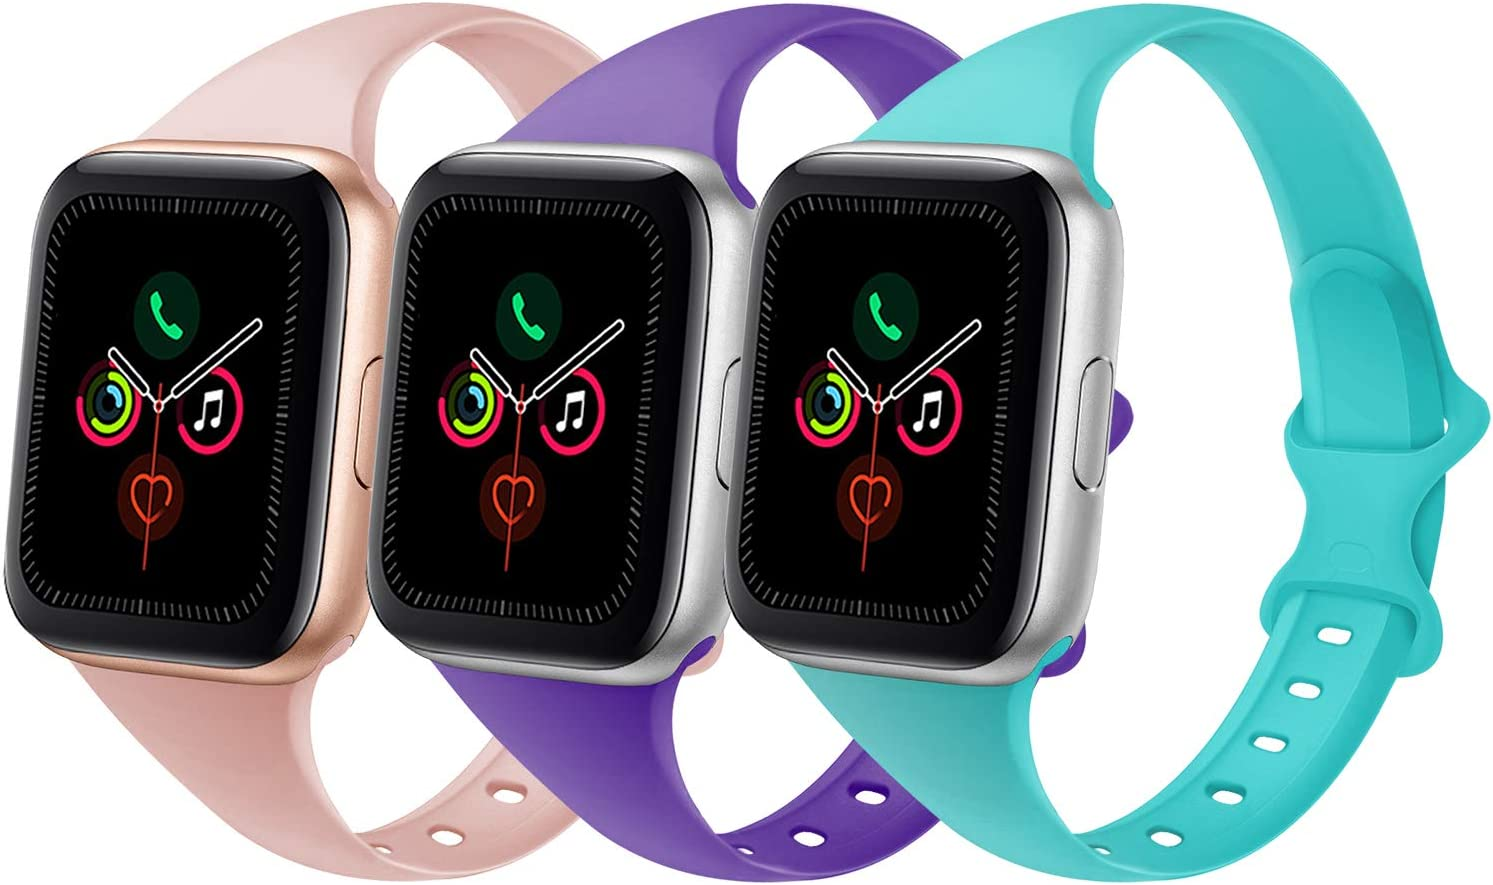 DYKEISS Sport Slim Silicone Band Compatible for Apple Watch Band 38mm 42mm 40mm 44mm, Thin Soft Narrow Replacement Strap Wristband for iWatch Series 5/4/3/2/1 (Sand Pink/Purple/Teal, 38mm/40mm)